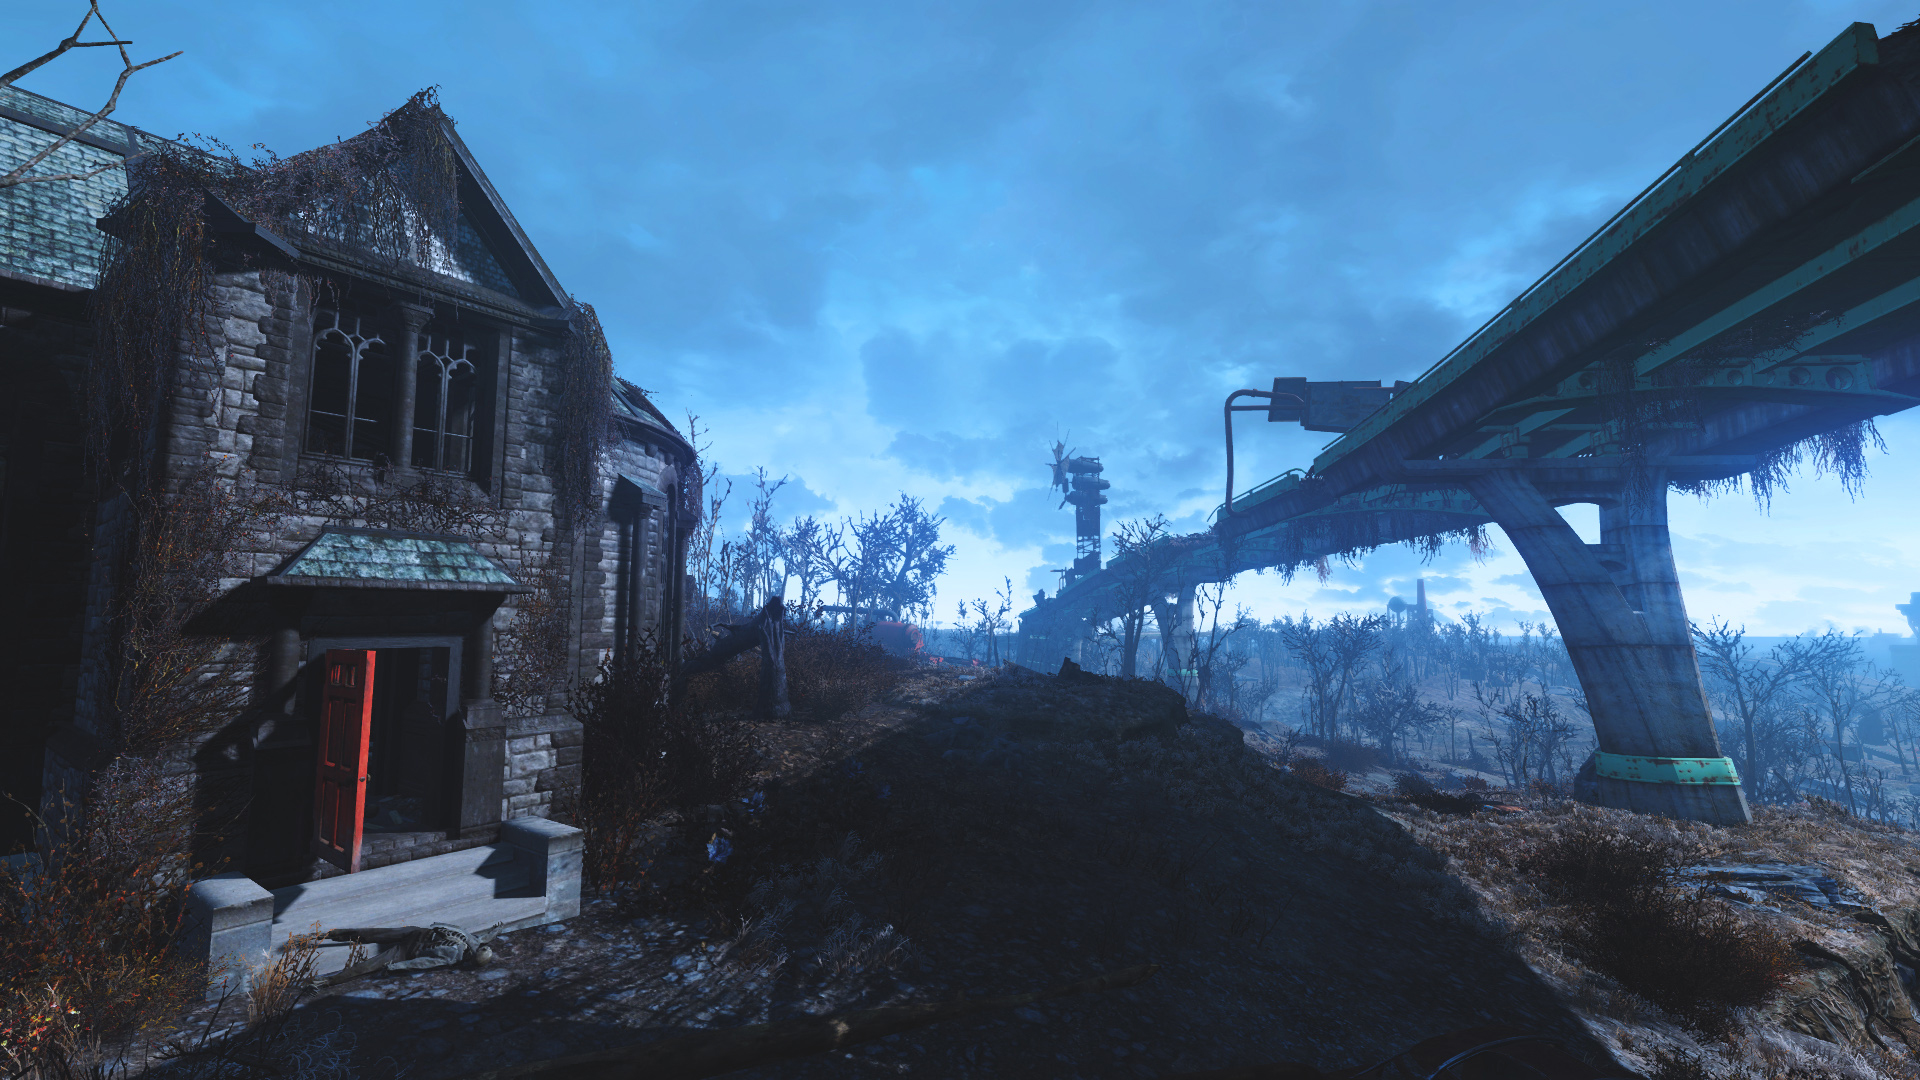 Epic fallout 4 hd wallpapers view larger image fallout 4 hd wallpaper creepy house thecheapjerseys Gallery